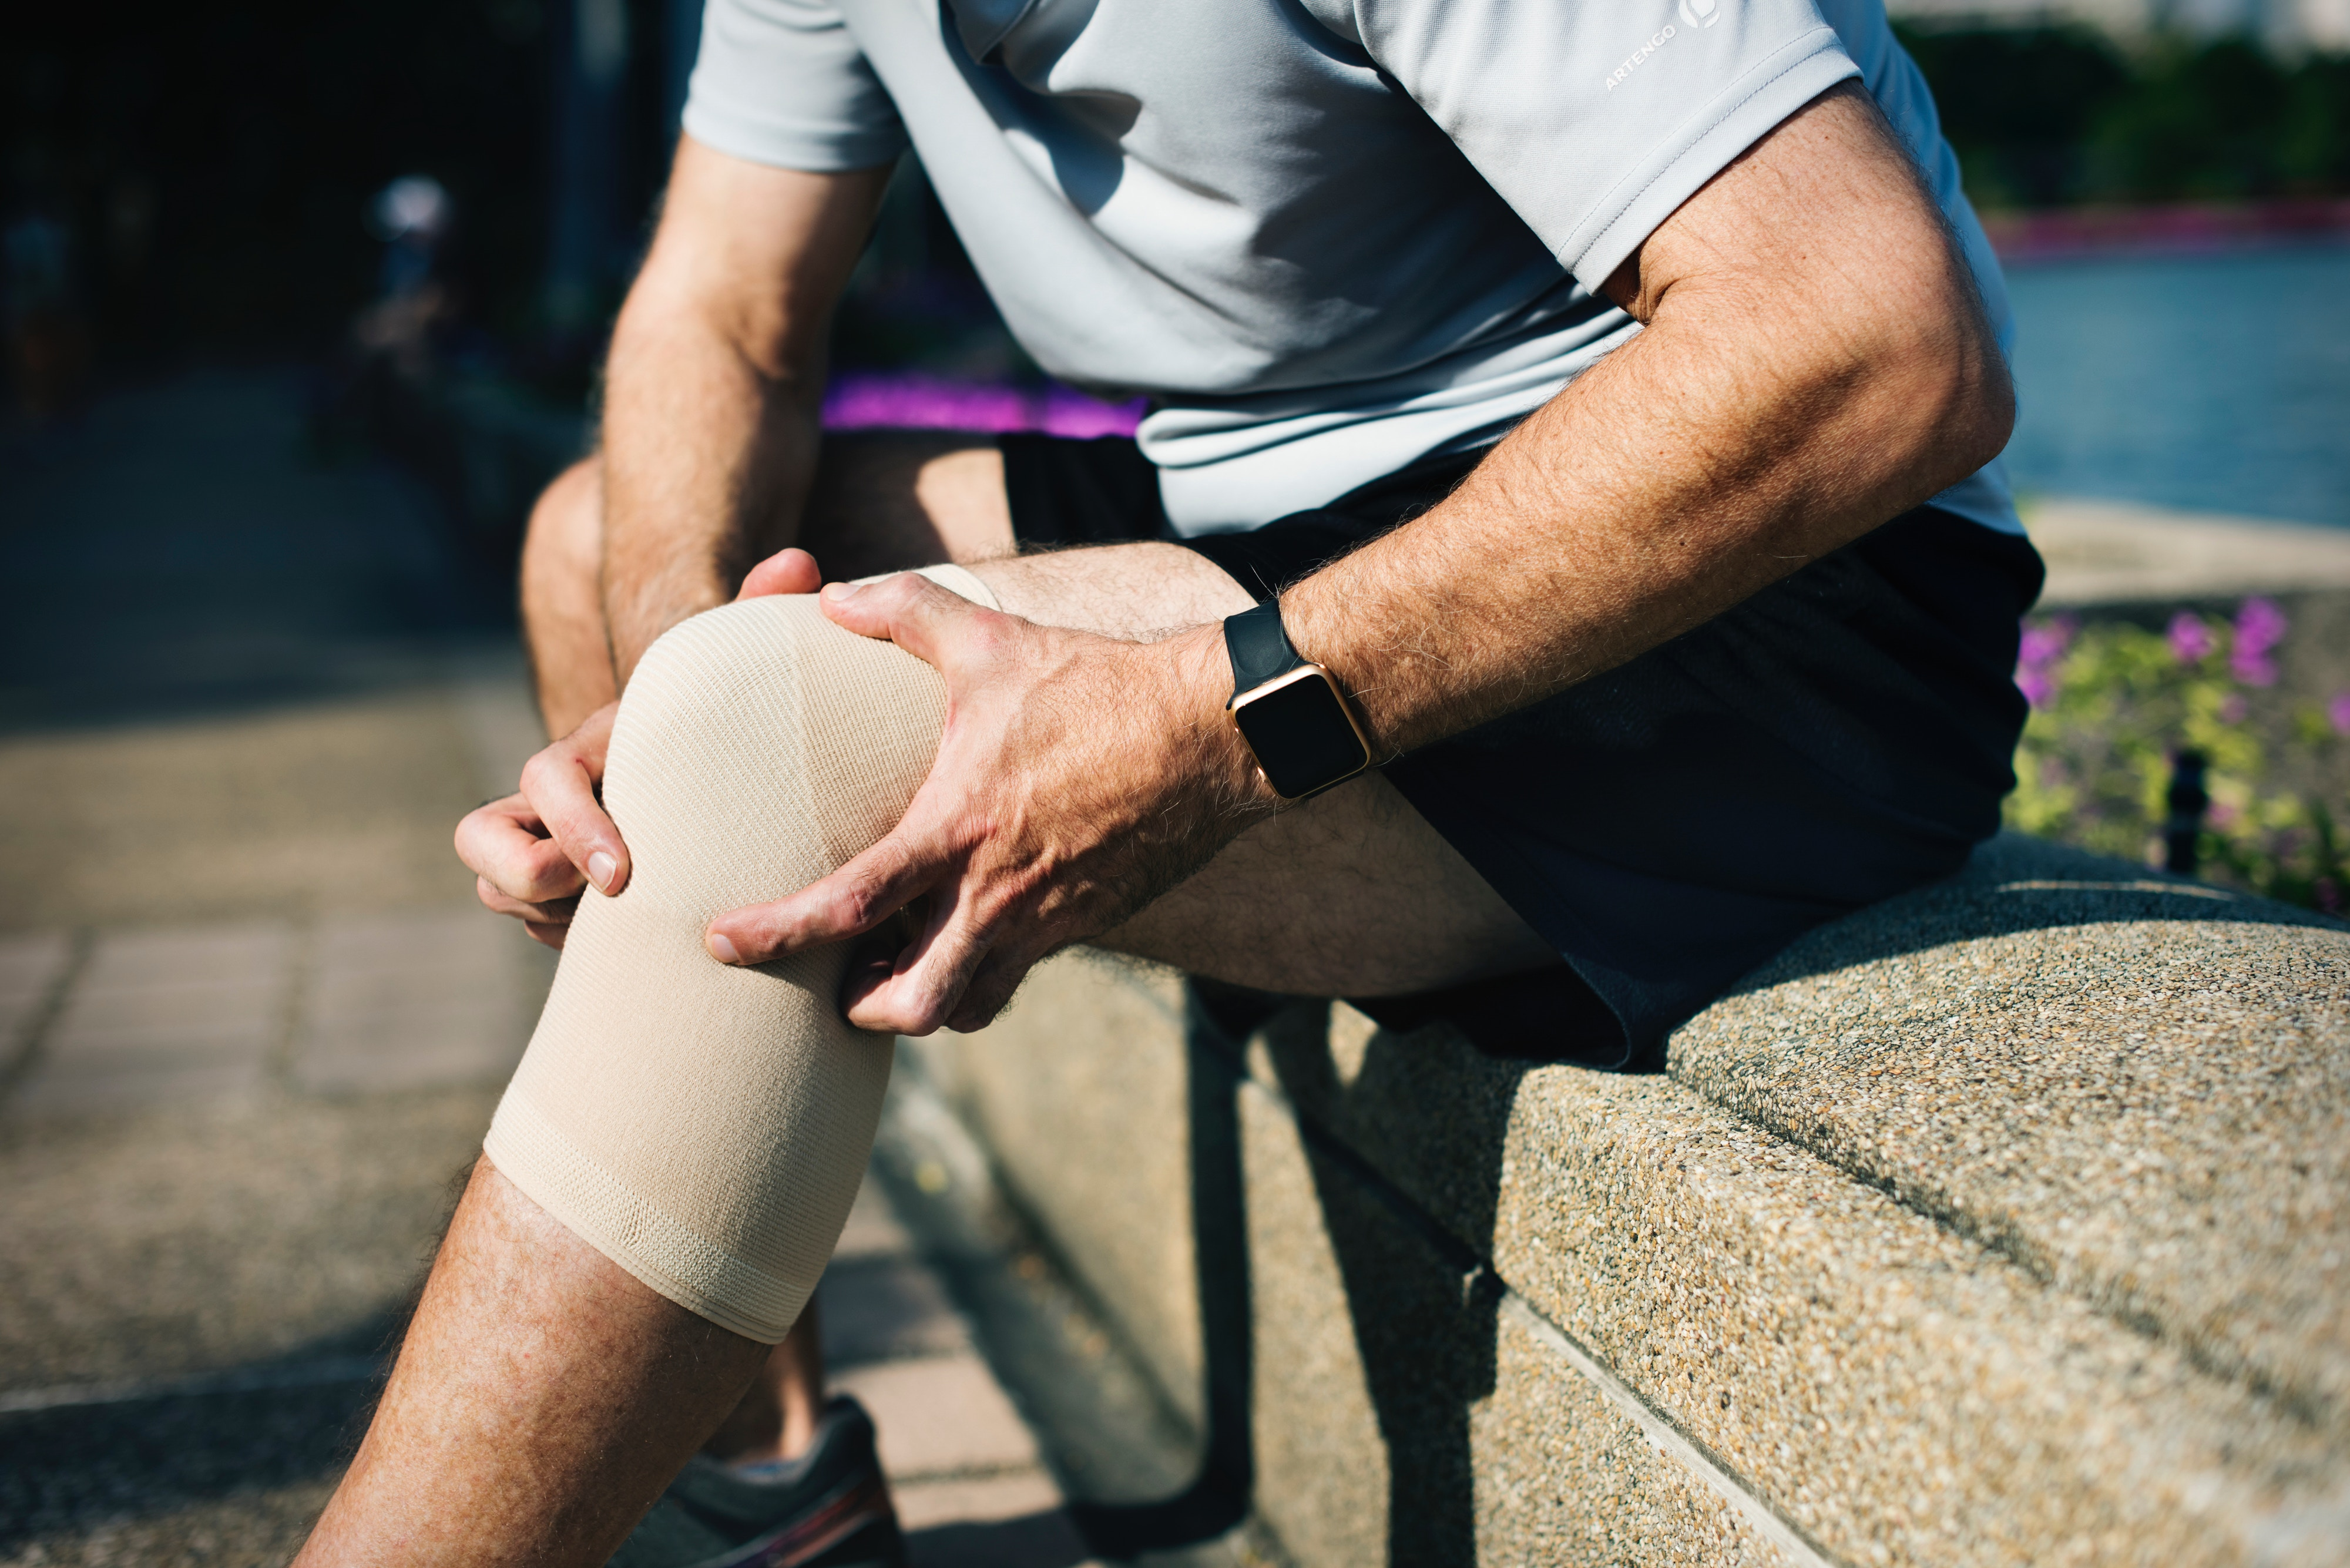 Knee Joint – pain